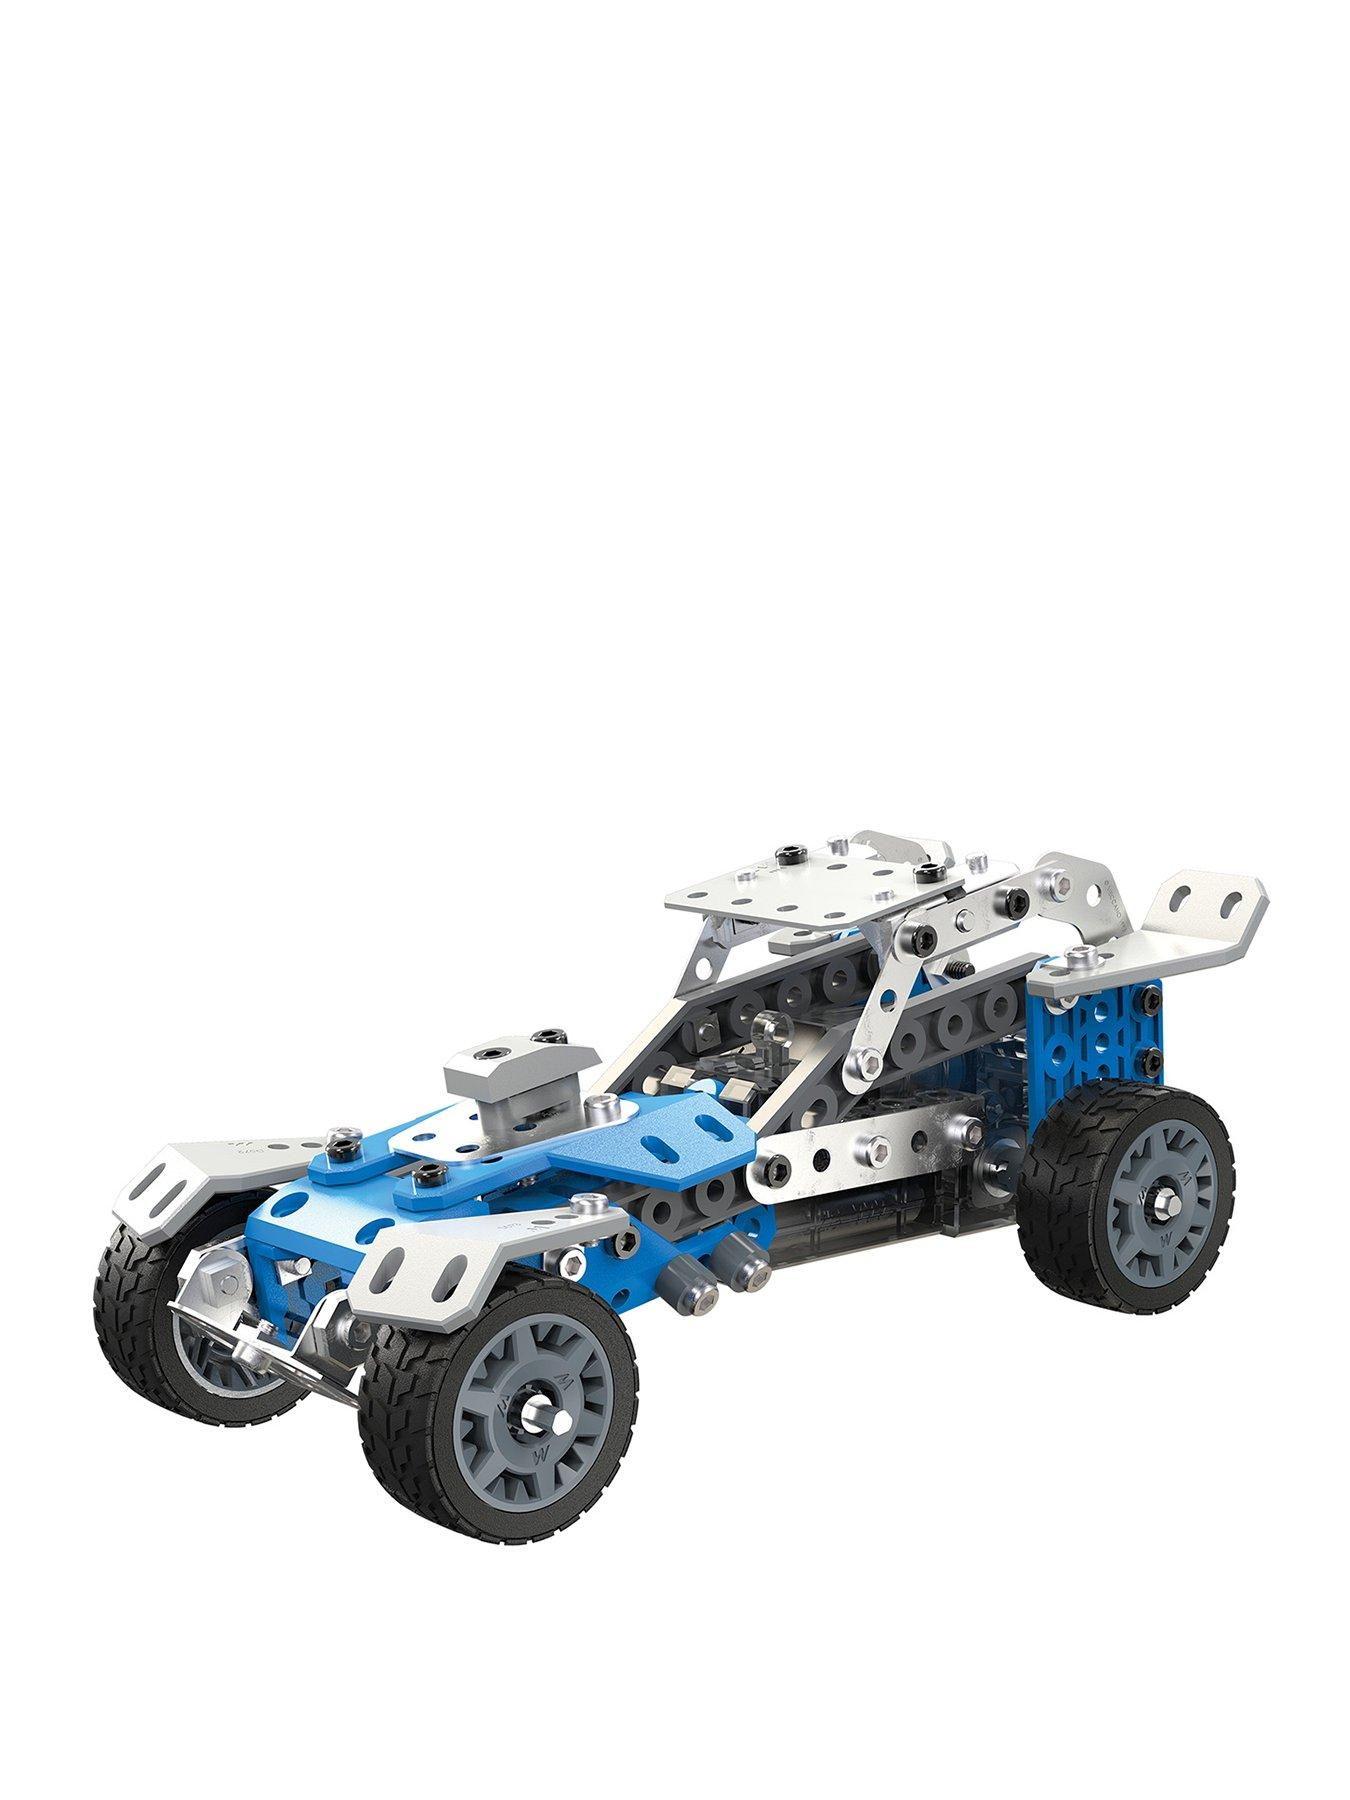 Meccano Sports Roadster RC 2 in 1 Model Set 150 Pieces